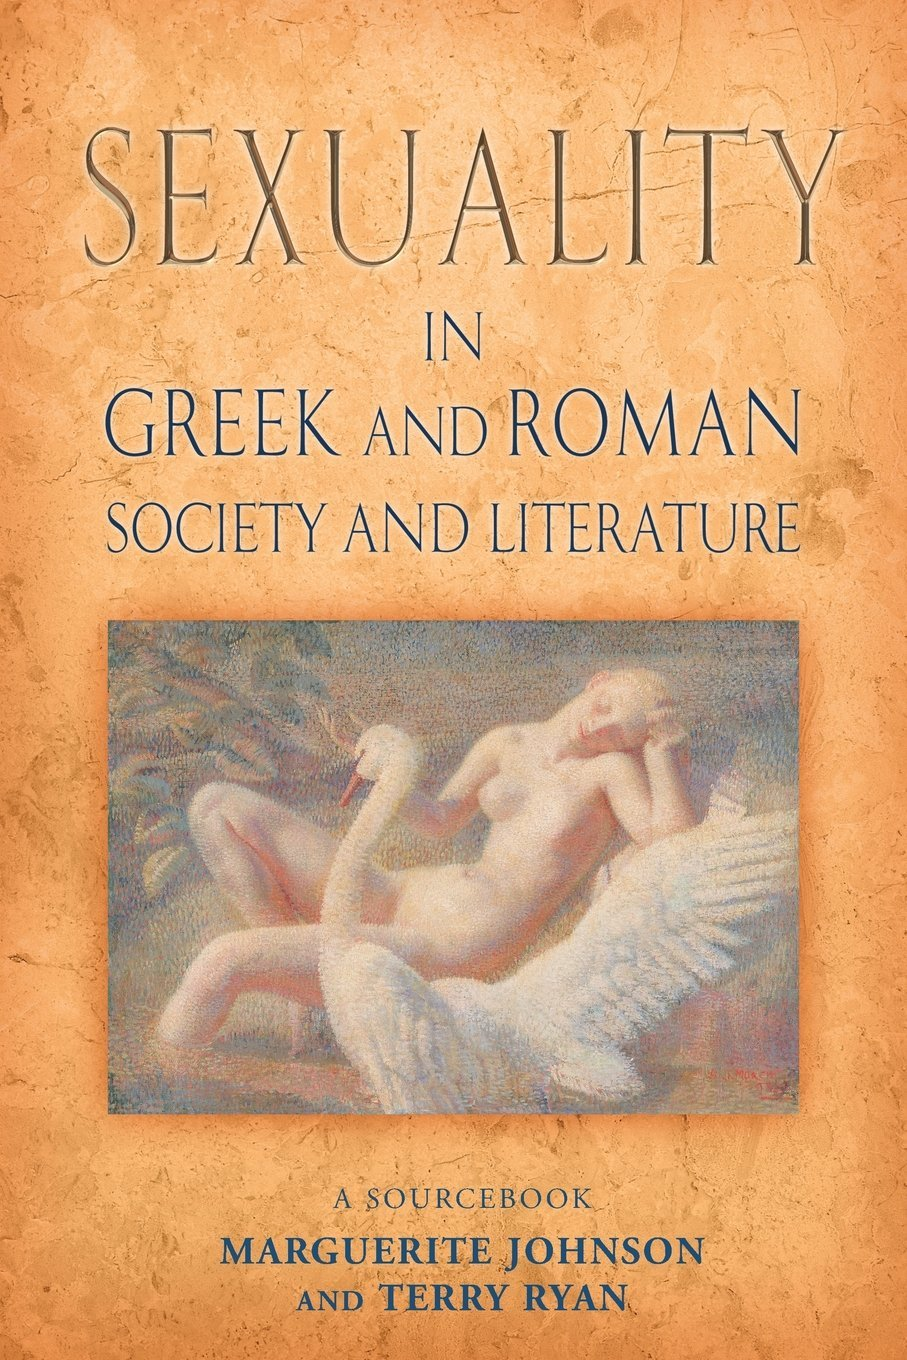 Sexuality in Greek and Roman Literature and Society: A Sourcebook (Routledge Sourcebooks for the Ancient World) free download